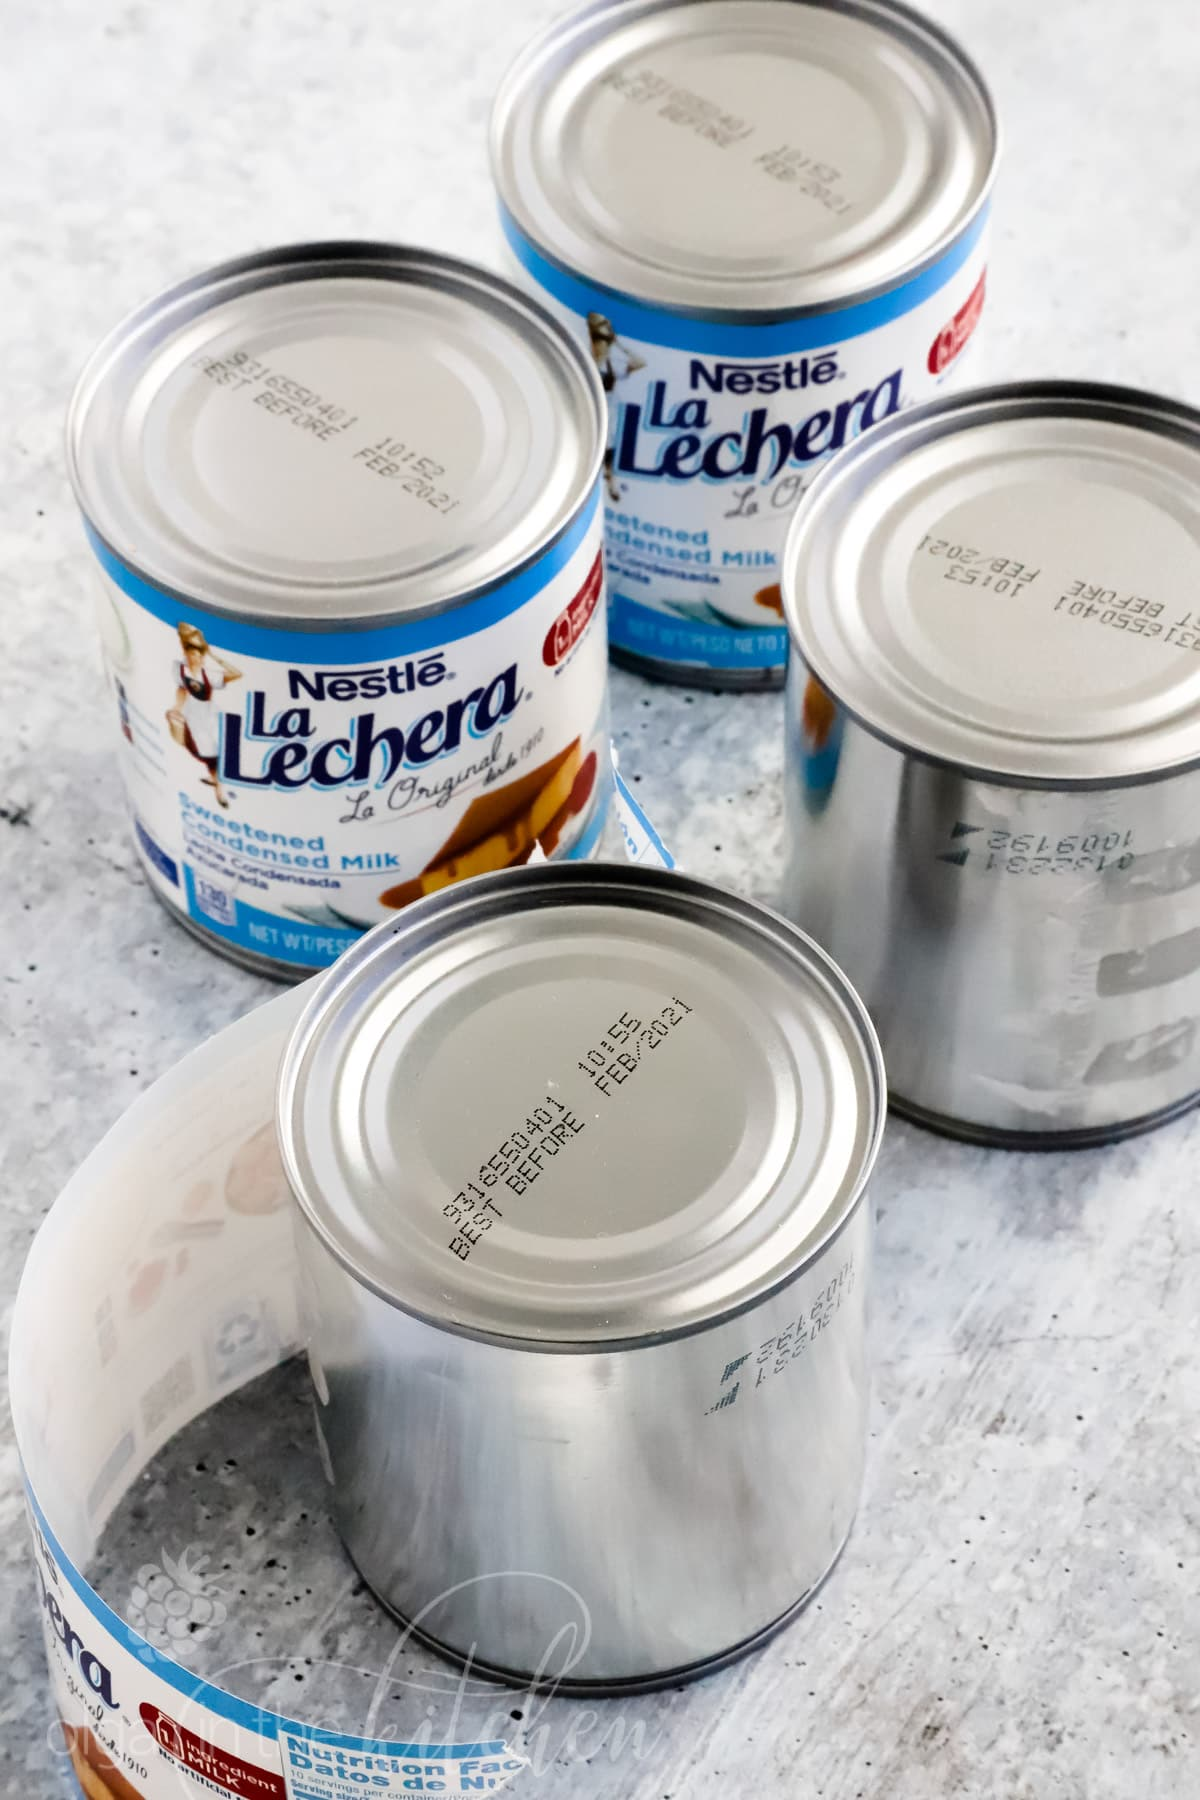 An easy Dulce de Leche (Cooked Condensed milk) recipe with only 1 ingredient! Sweetened condensed milk is cooked until it becomes thick, creamy caramel-like pudding that you can use for many dessert recipes. #dulcedeleche #sweetenedcondensedmilk #howtomakedulcedeleche #lalechera #nestle #olgainthekitchen #howto #dessert #filling #caramel